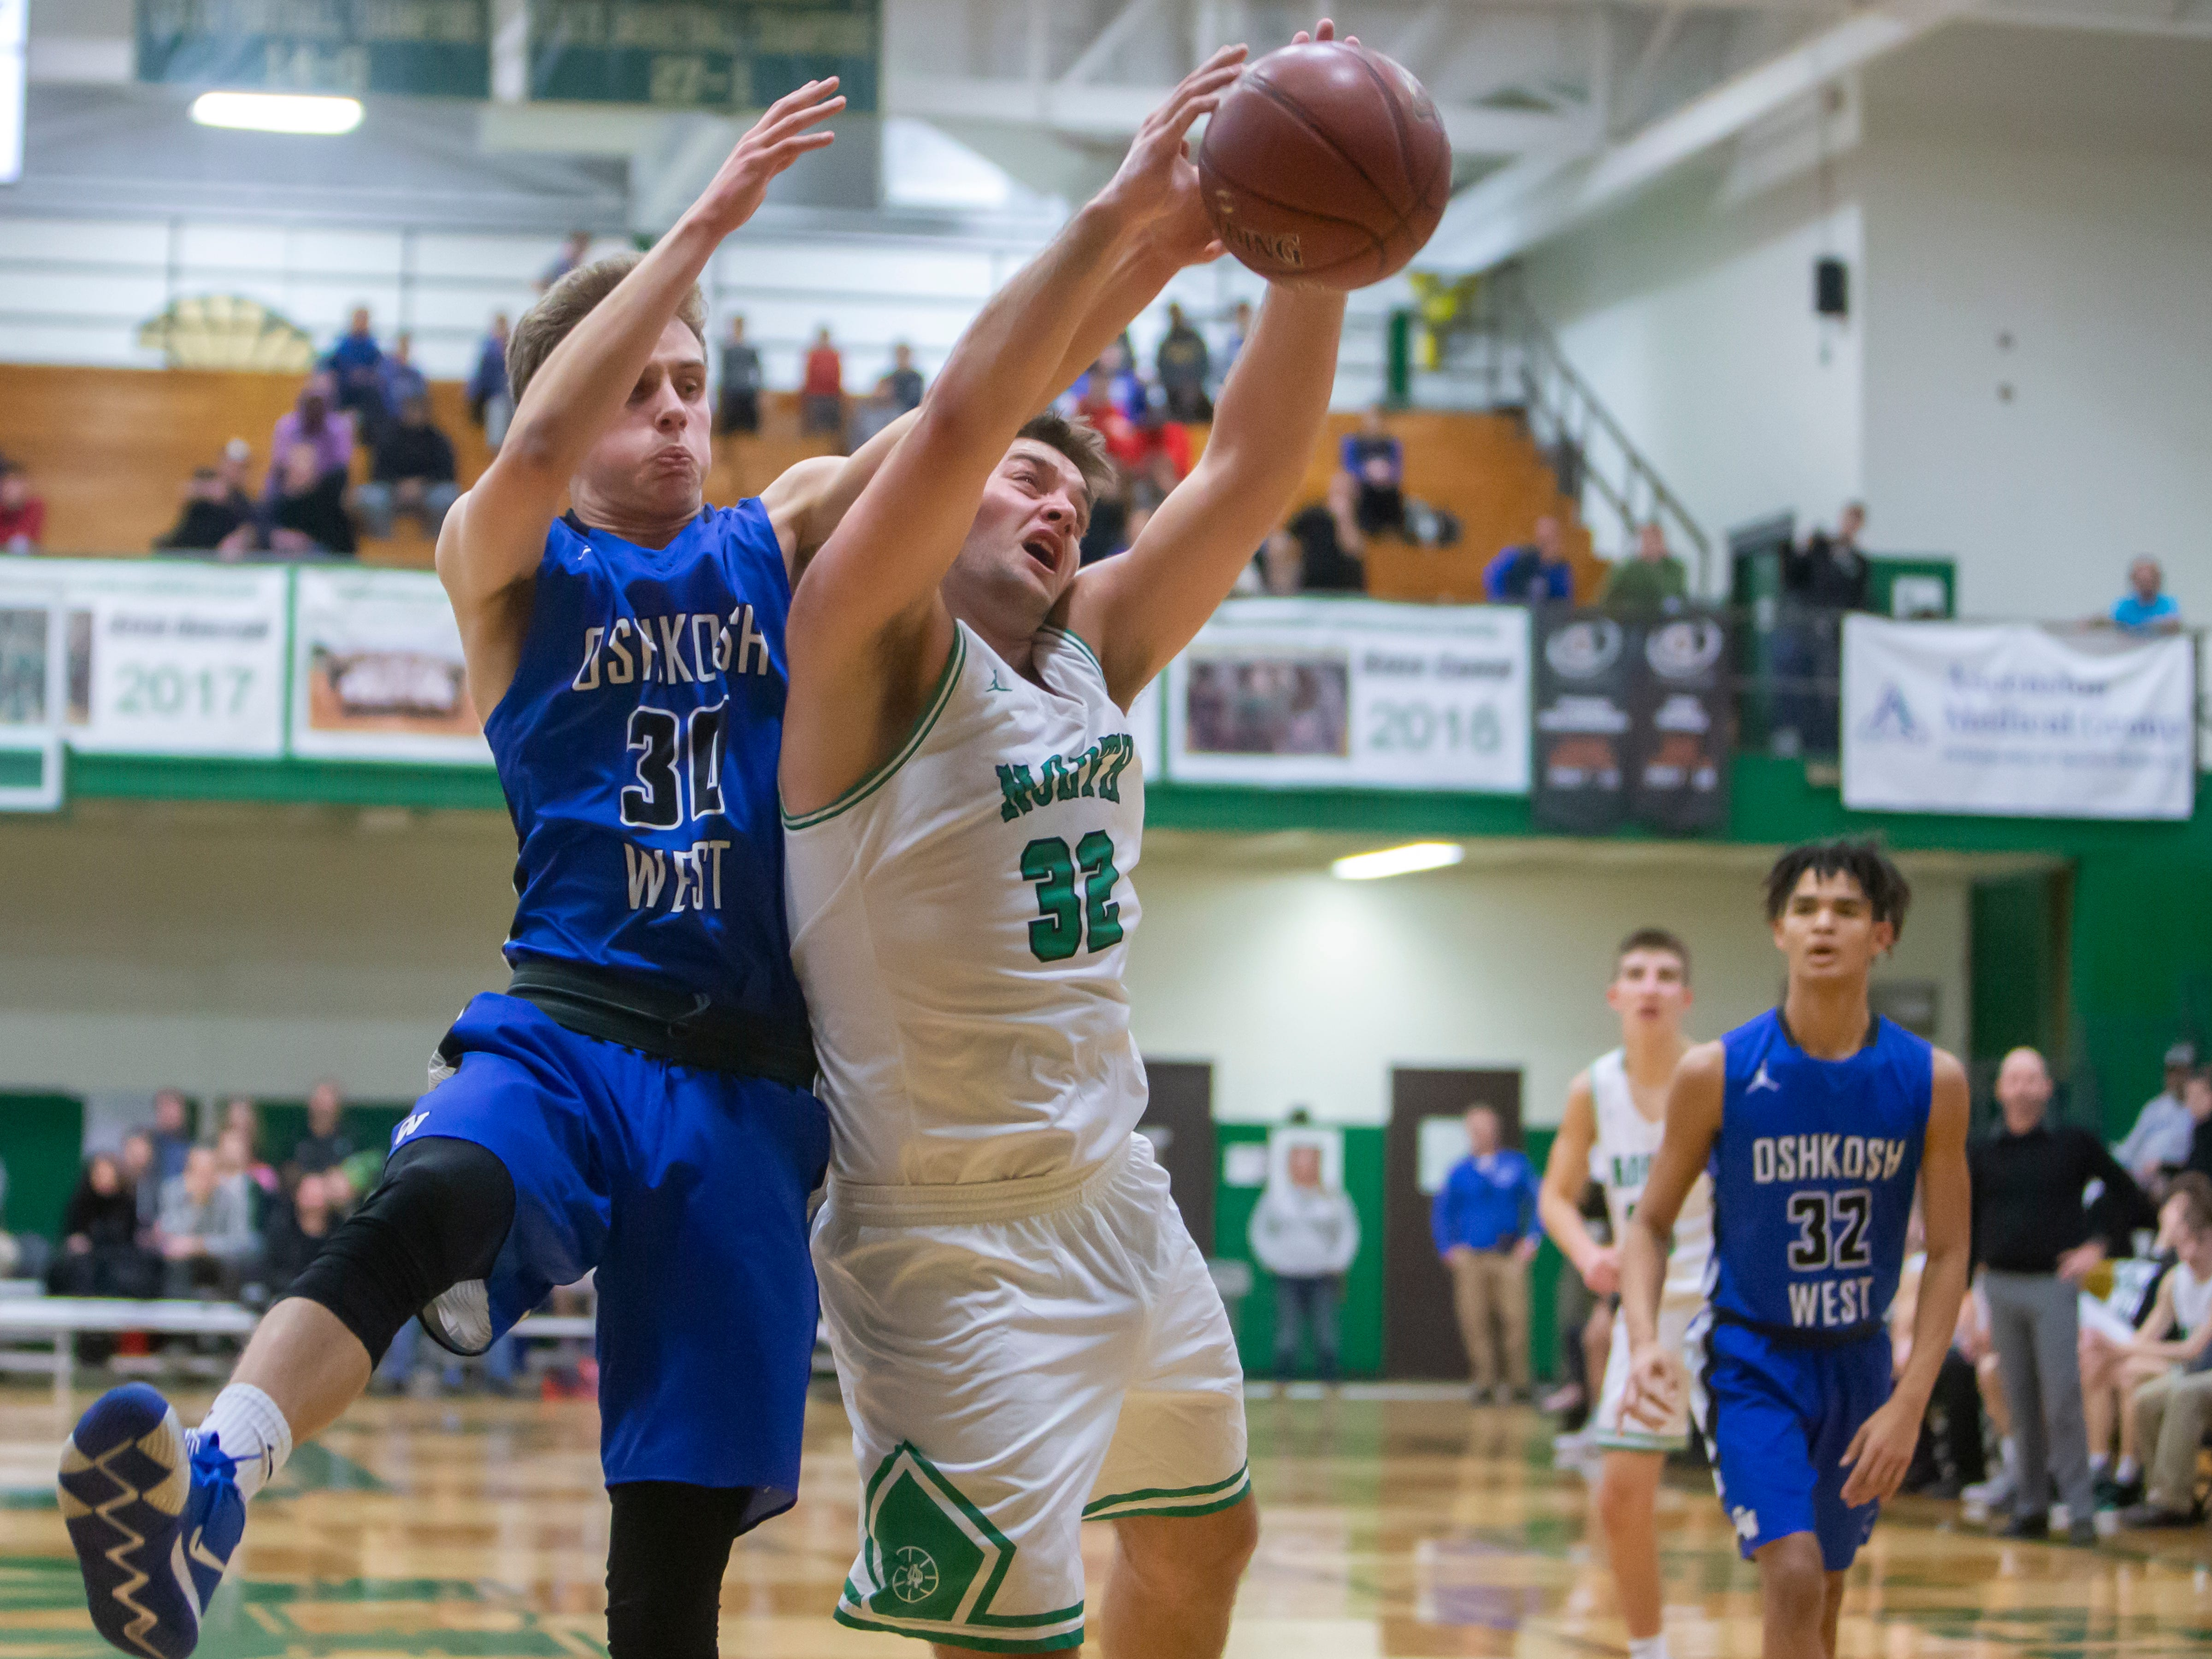 Oshkosh North's Matt Hickey attempts to gain control of the rebound in front of Oshkosh West's Caleb Fuller at the Oshkosh North High School on Tuesday, Jan. 8, 2019.